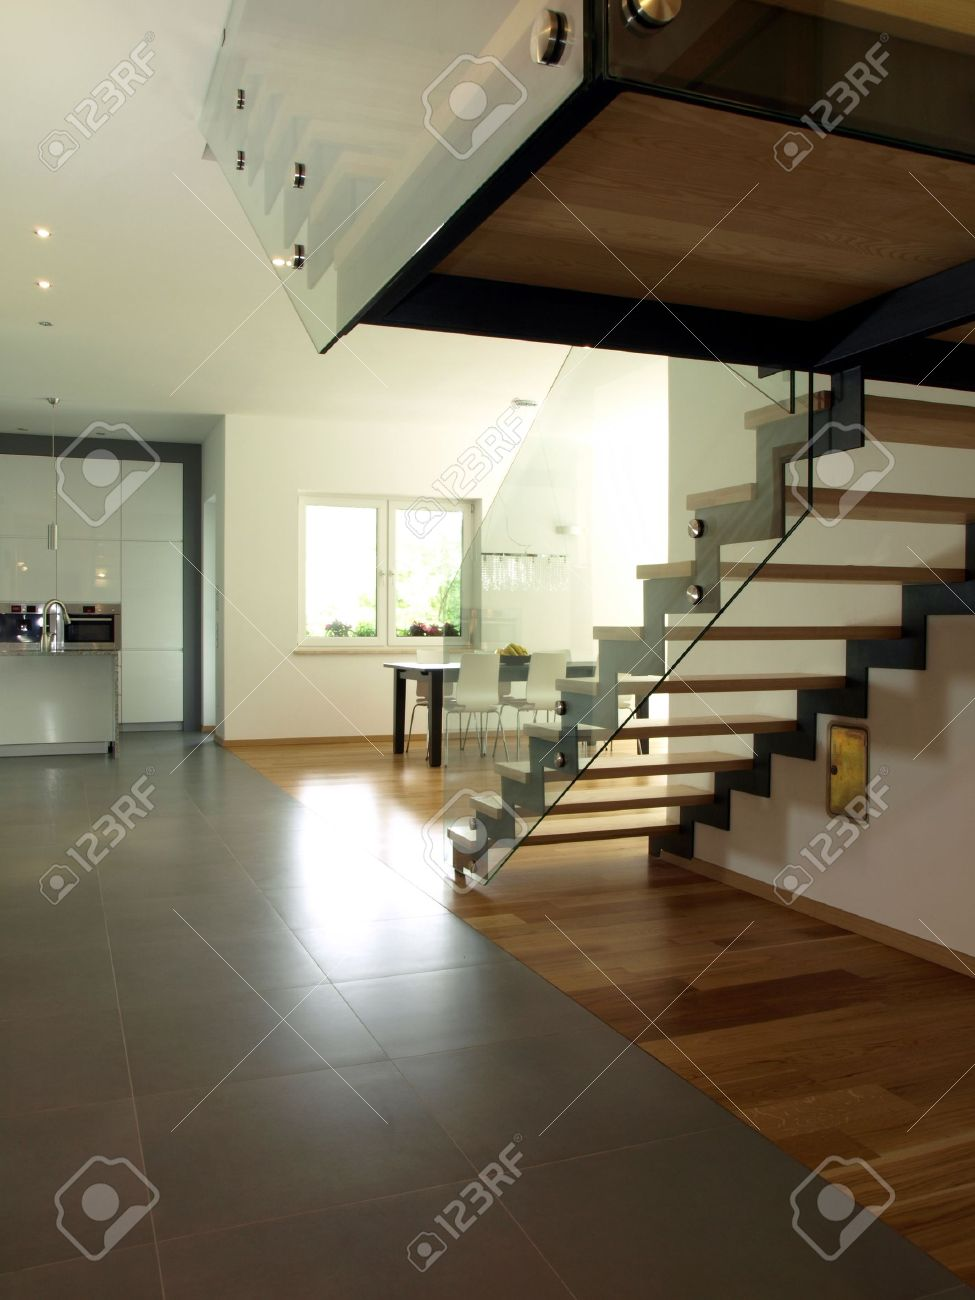 Interior Of New Modern House, Stairs nd Kitchen Stock Photo ... - ^